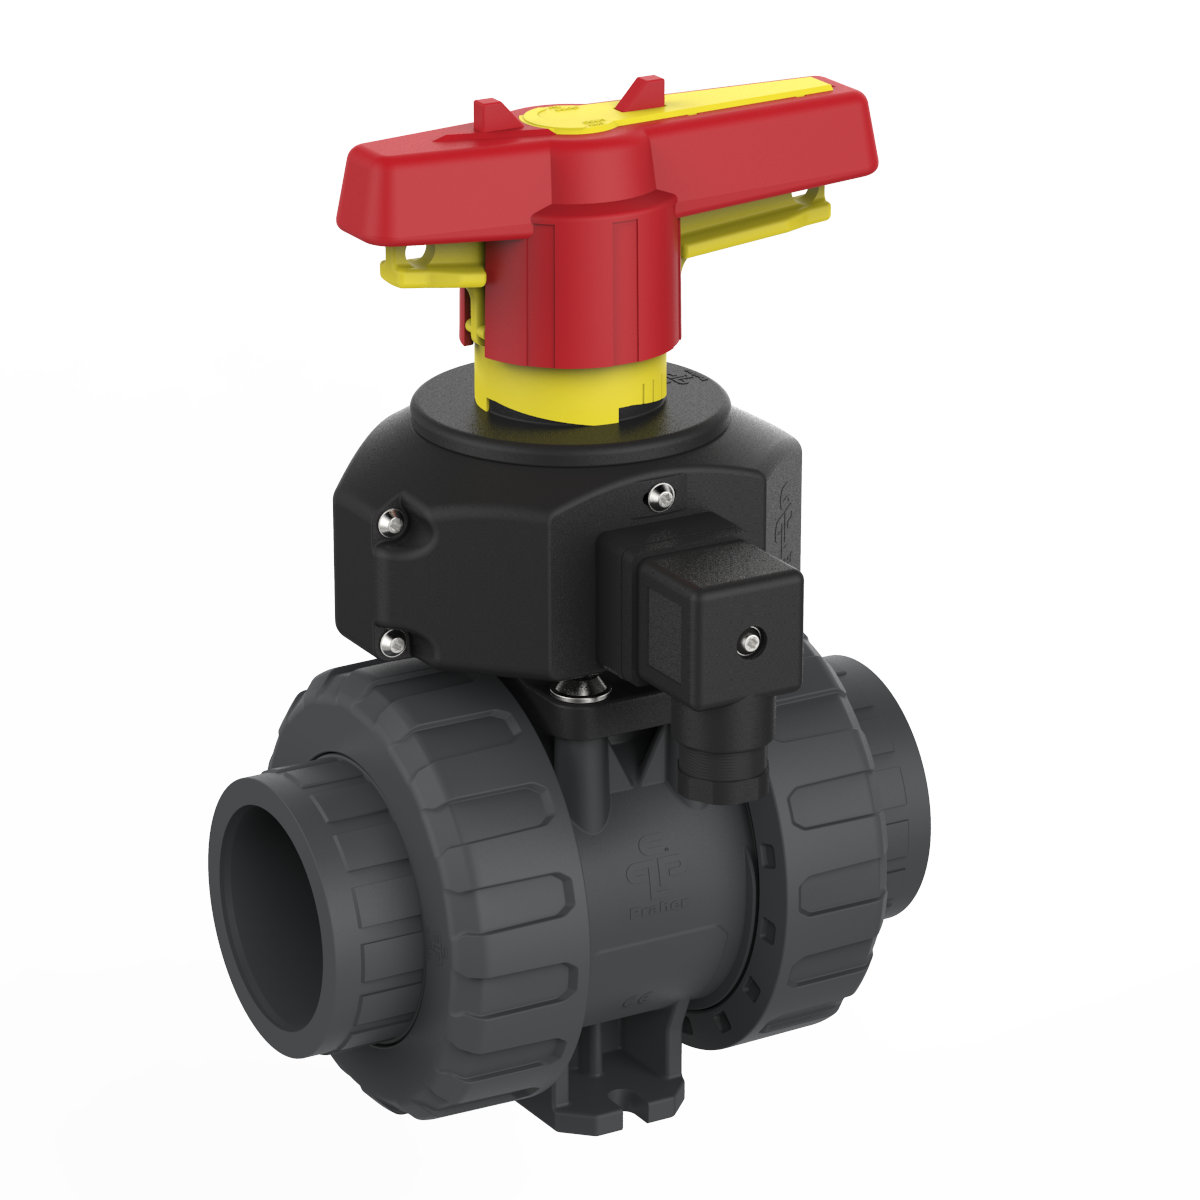 Ball Valve M1-DN40-PVC with position feedback, grey, yellow and red